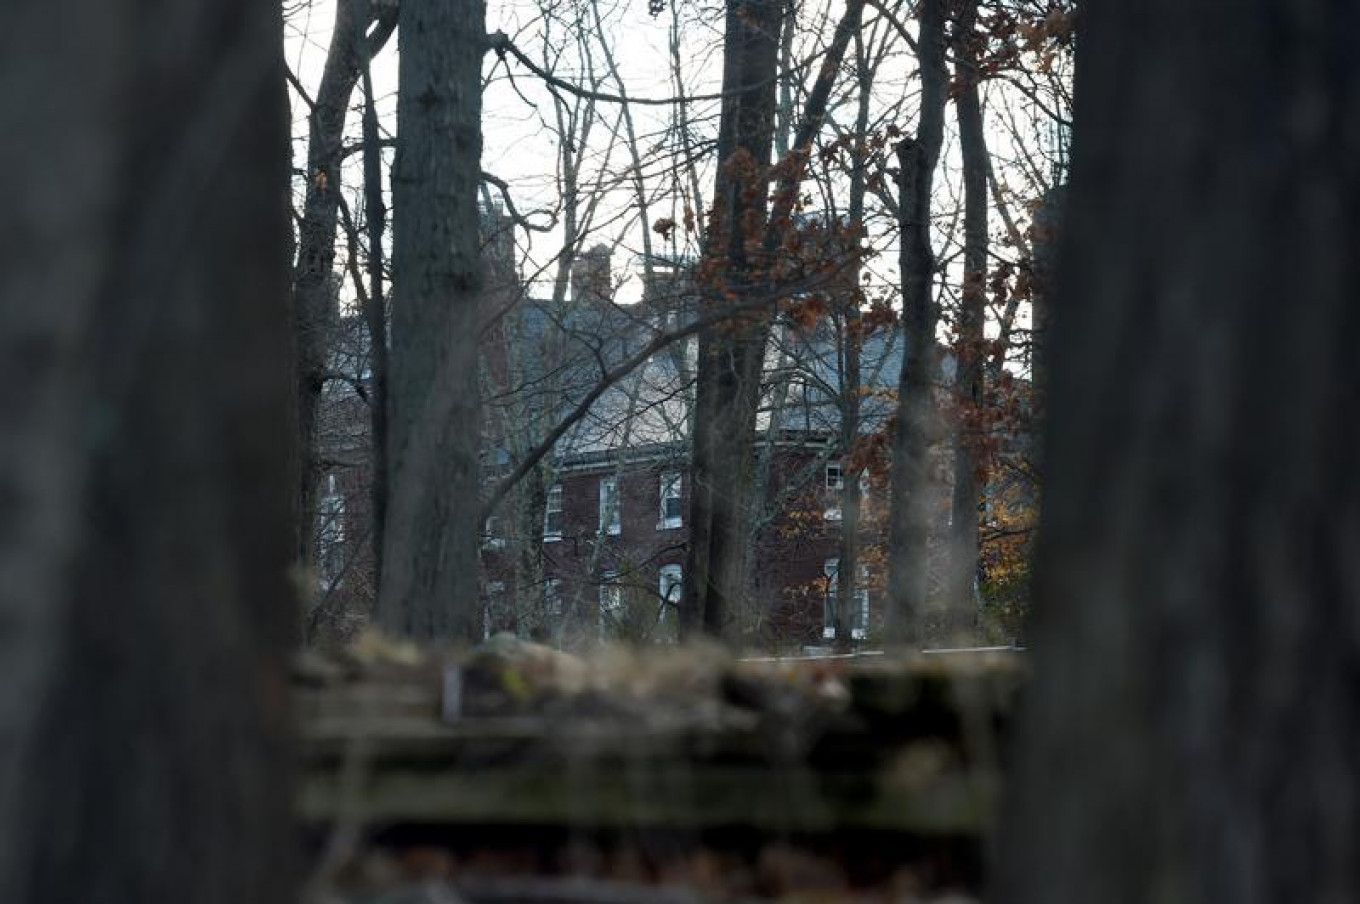 A Russian compound, which was ordered to be closed and vacated, is seen in Long Island on Dec. 30, 2016.				 				Rashid Umar Abbasi / Reuters